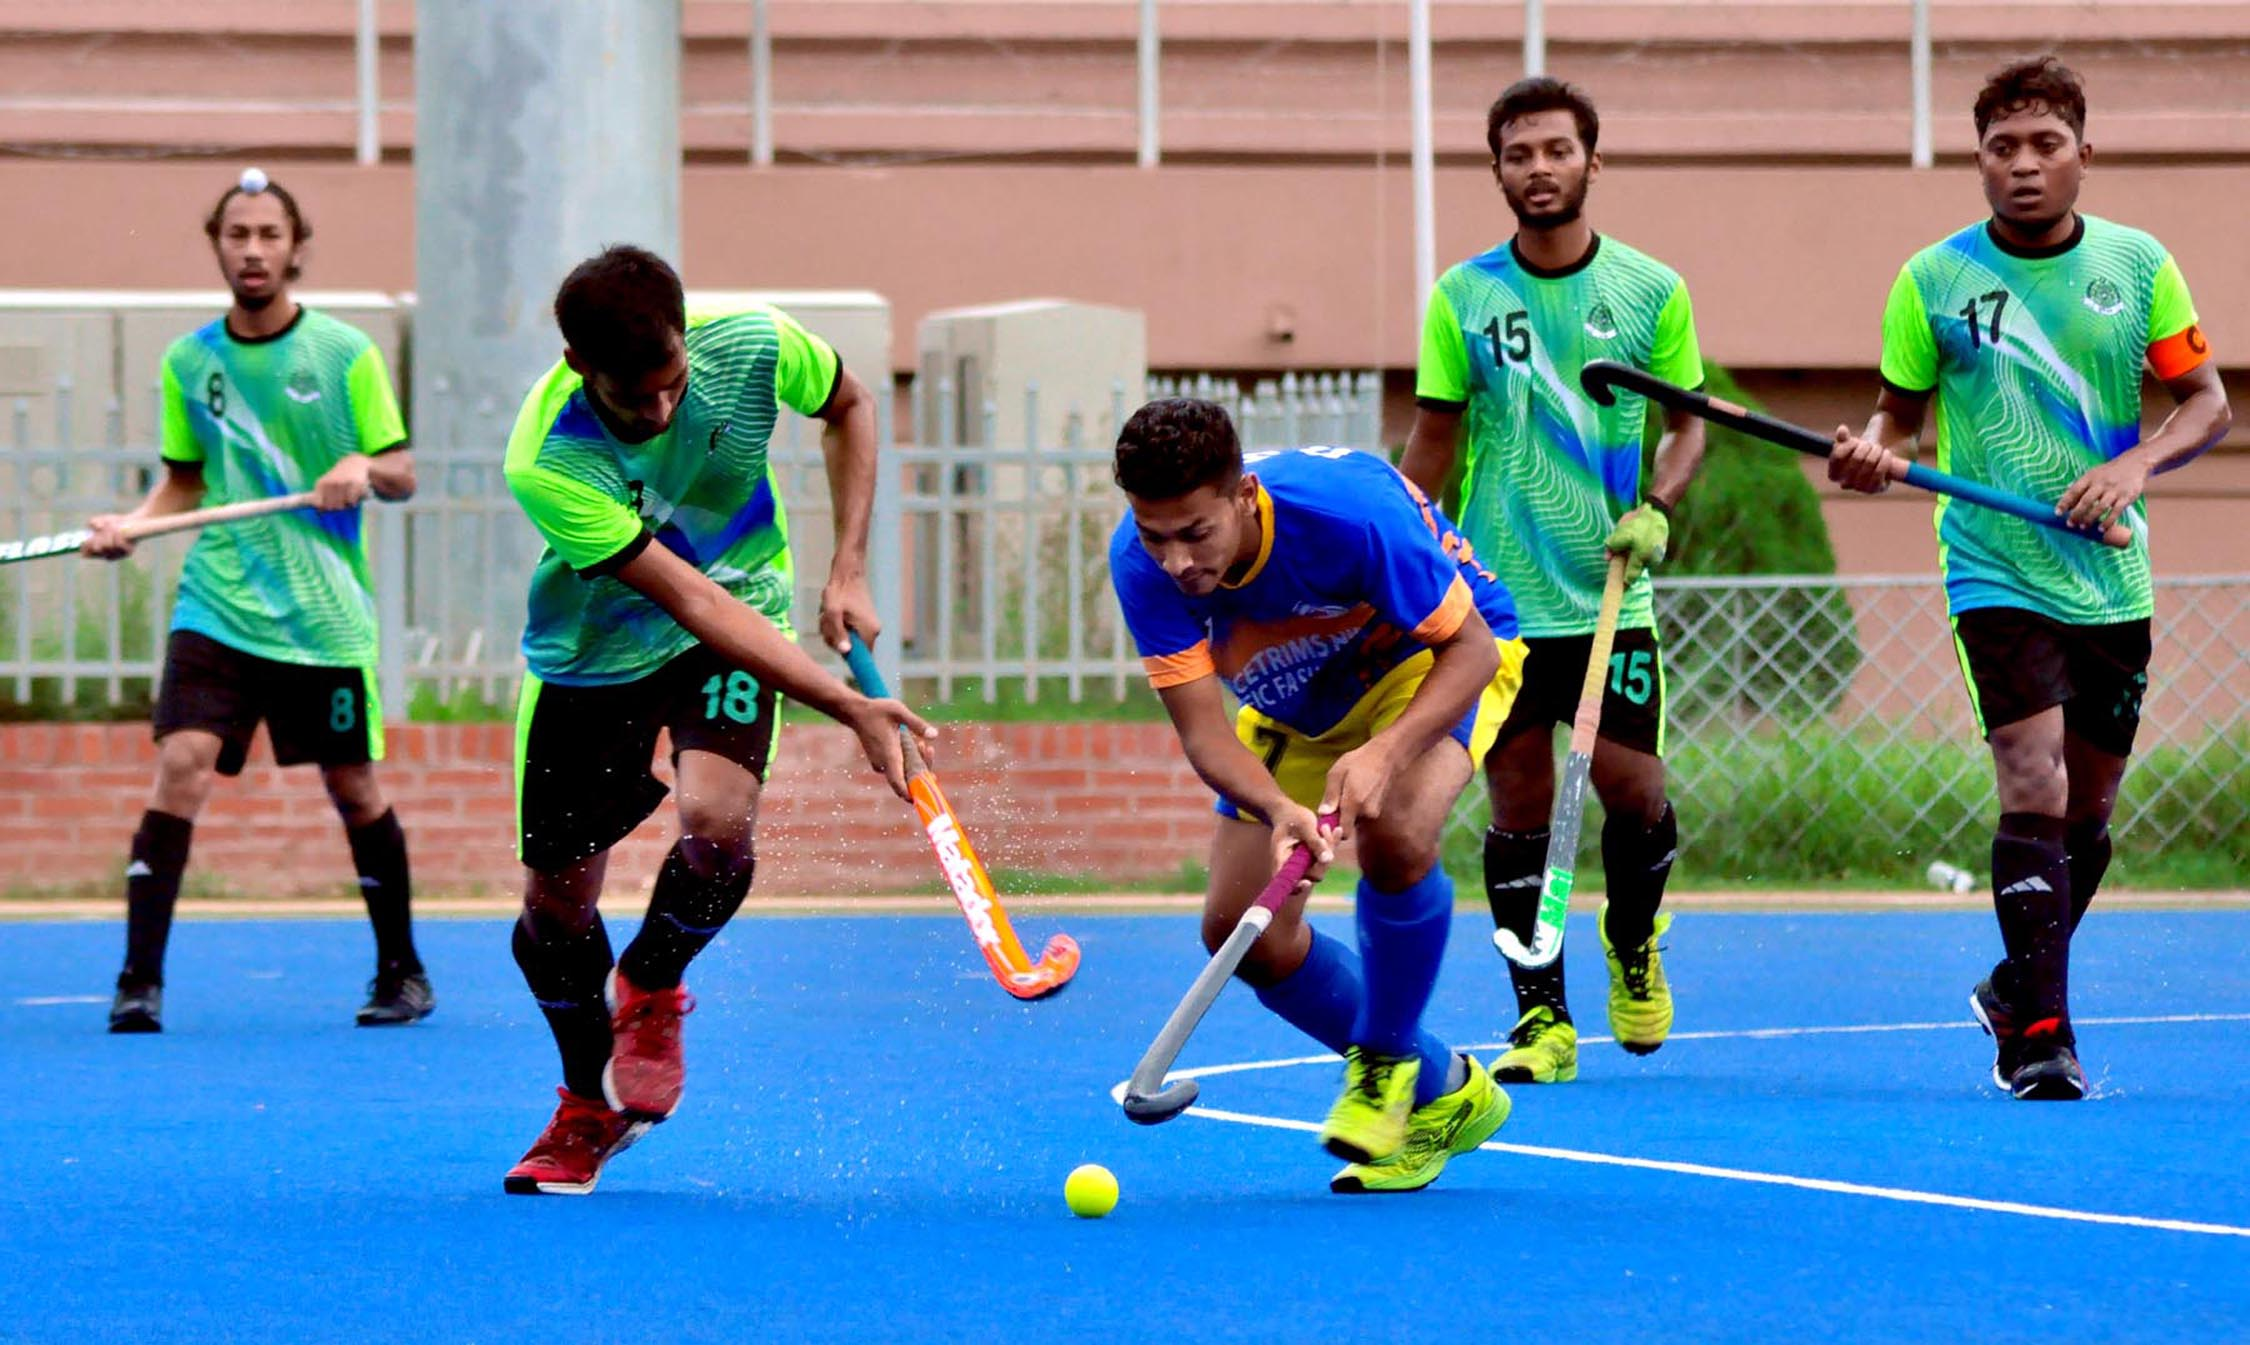 A view of the match of the Green Delta Insurance Premier Division Hockey League between Bangladesh Sporting Club and Dhaka Wanderers Club at the Maulana Bhashani National Hockey Stadium on Tuesday.